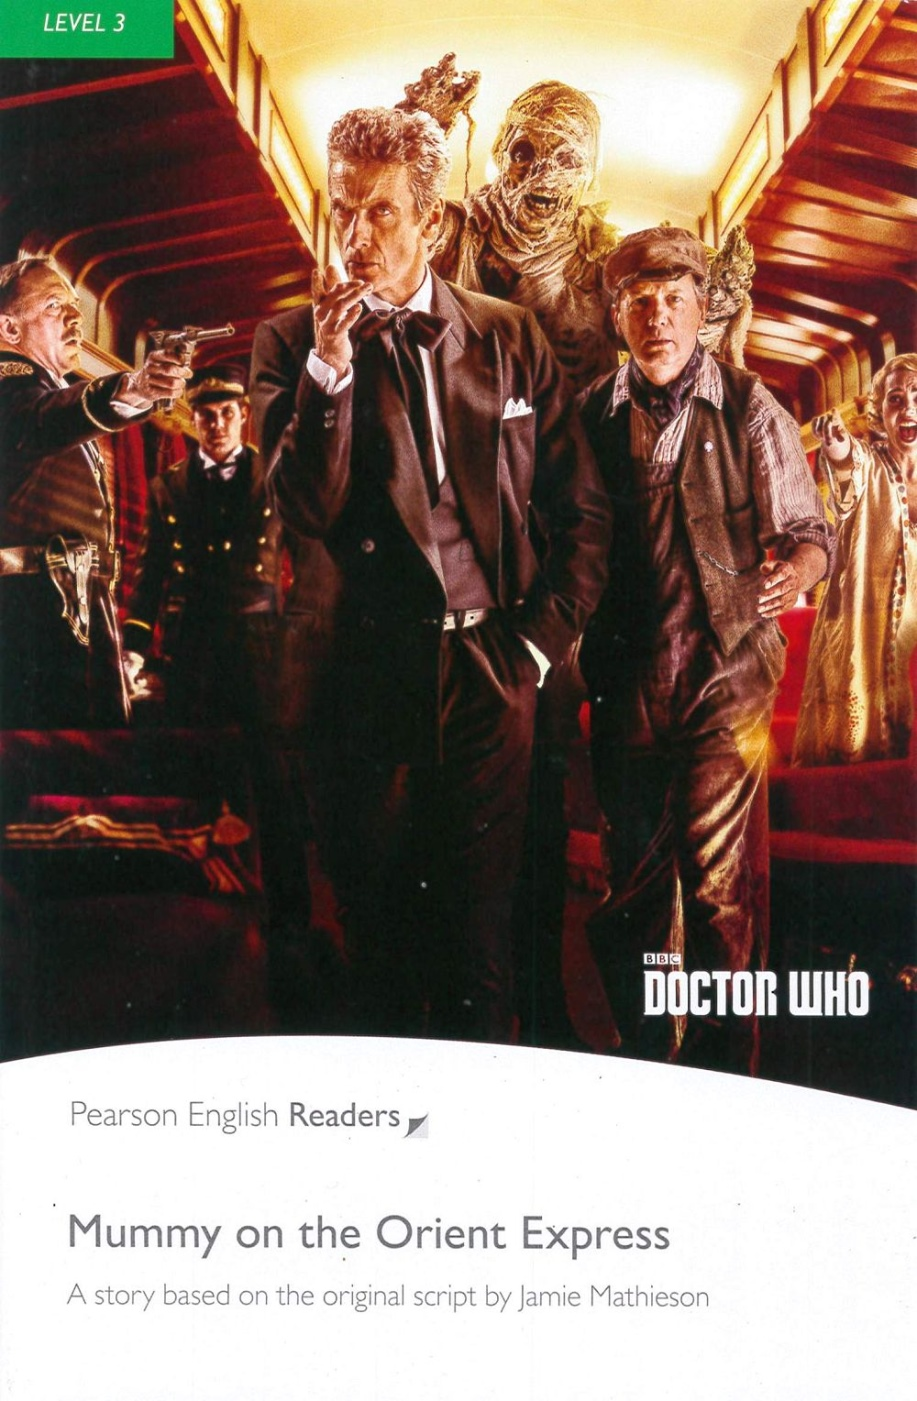 Pearson English Readers Level 3: Doctor Who: Mummy on the Orient Express